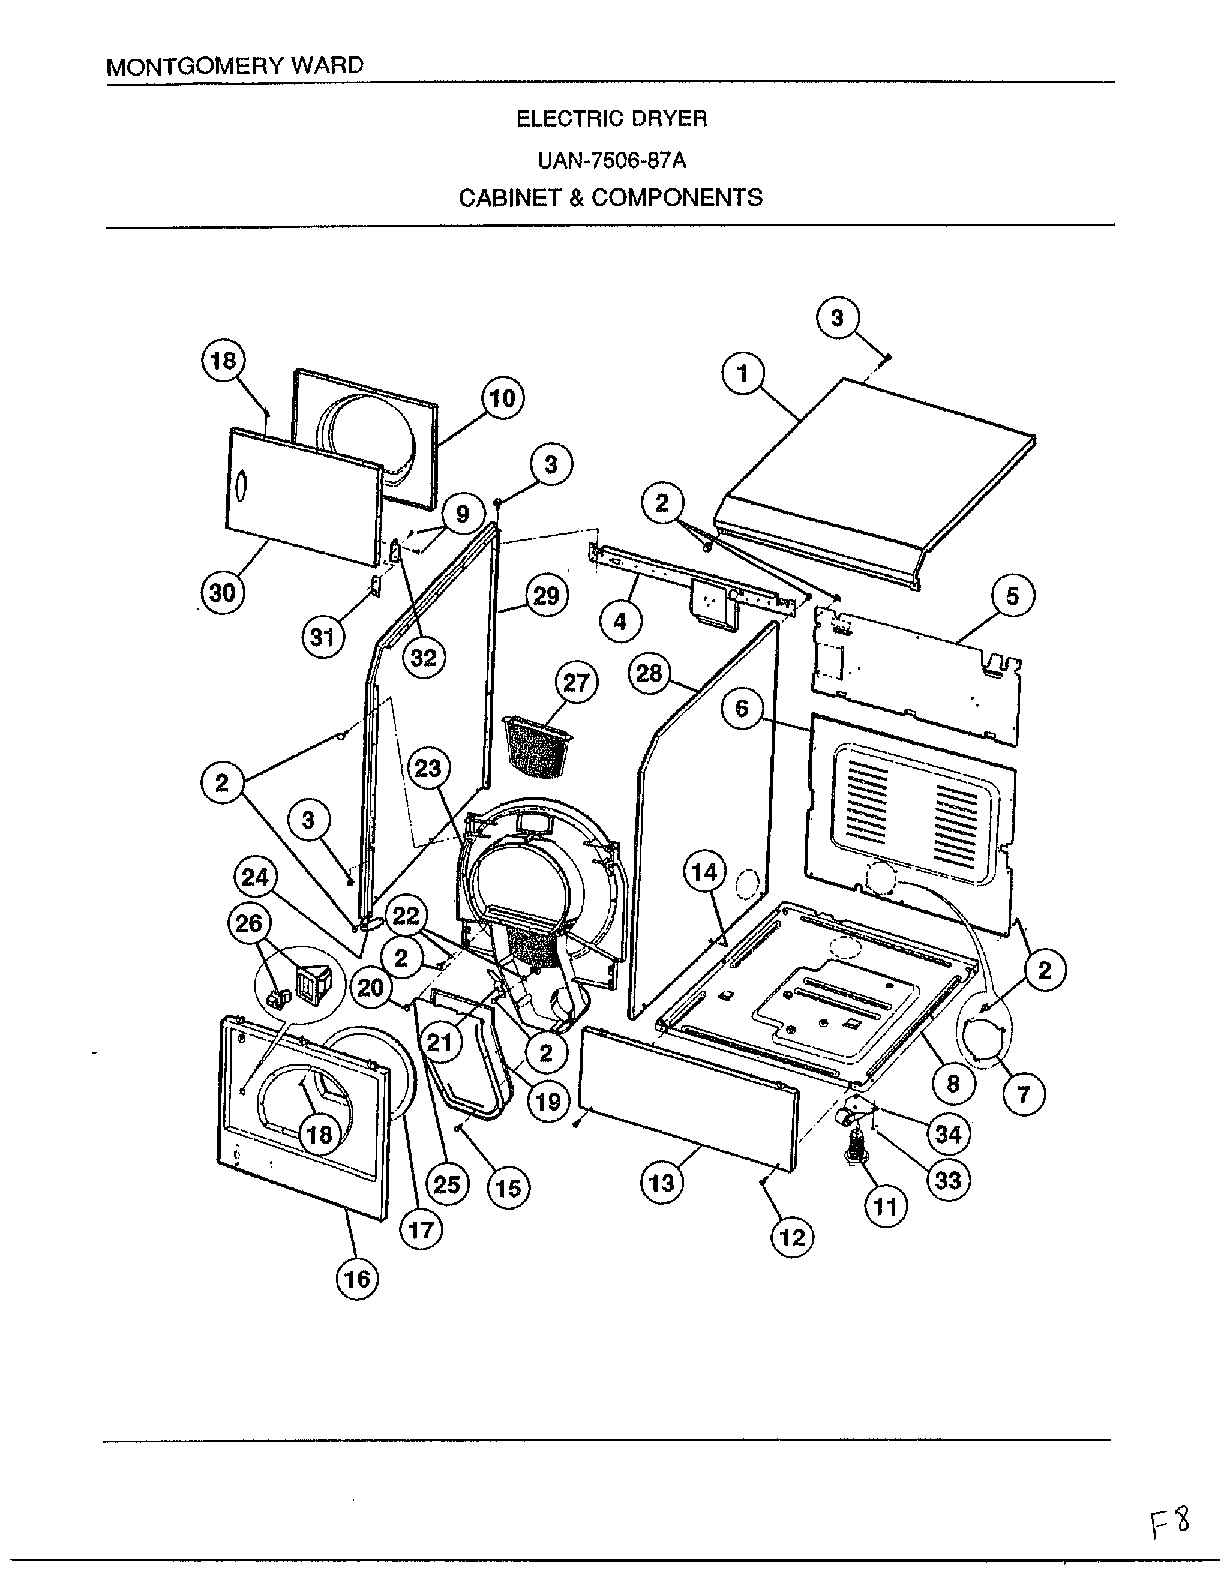 Norge 6835A REV E cabinet and components diagram